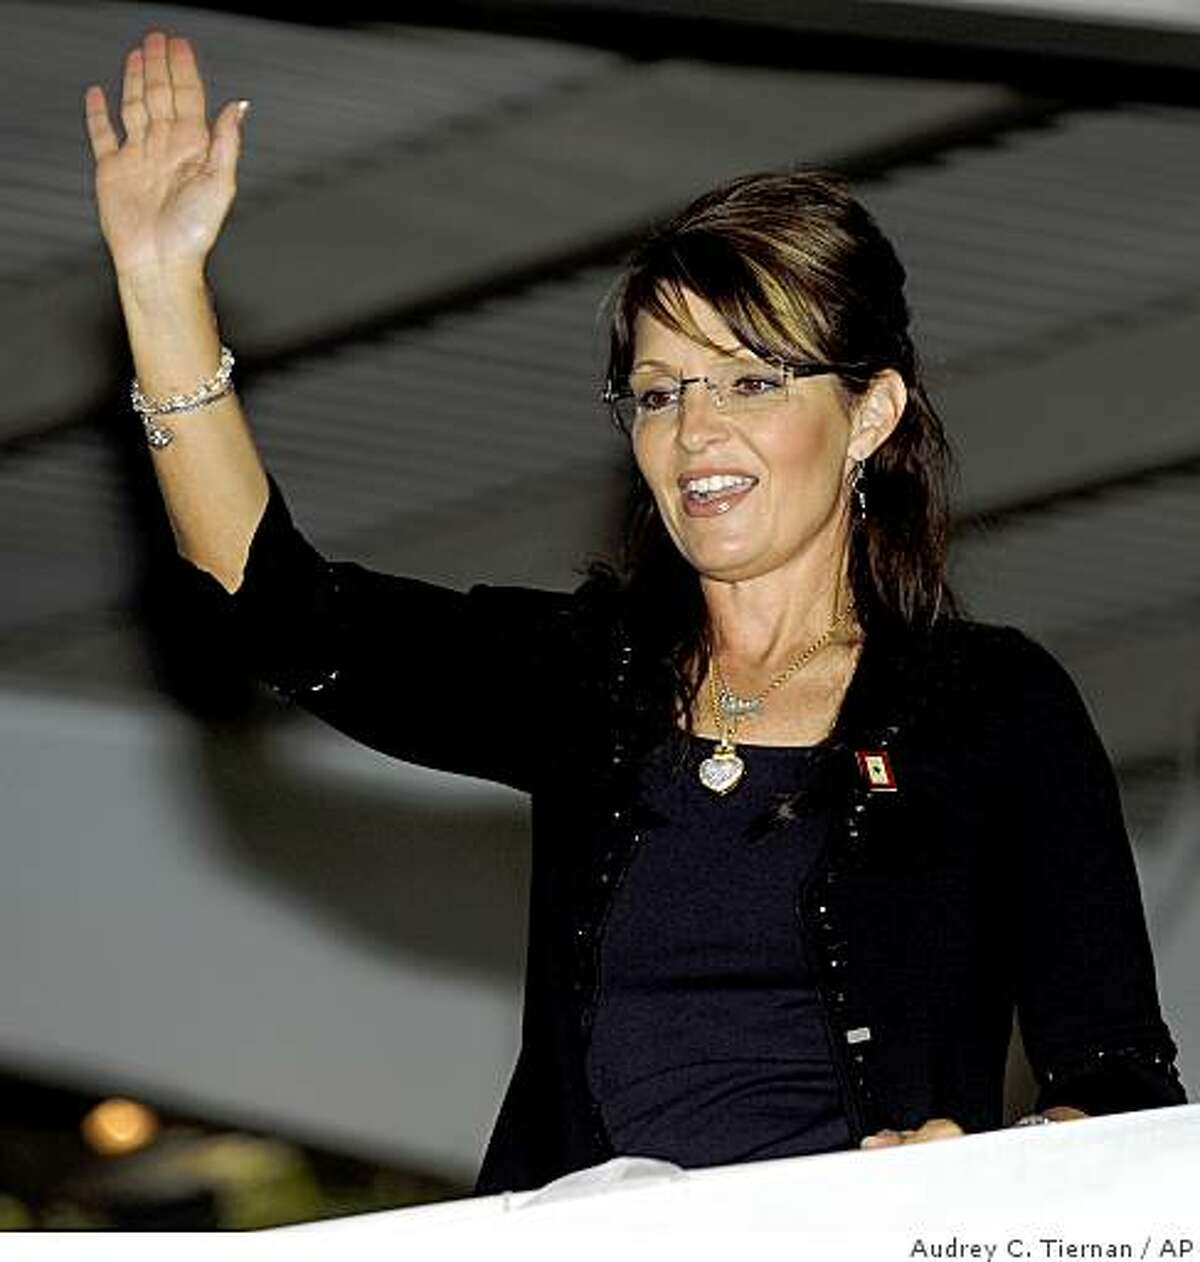 Alaska Governor Sarah Palin waves to the crowd as she arrives at a fundraiser for Independent Group Home Living, a non-profit organization that helps improve the lives of developmentally disabled people, on Sunday, June 7, 2009 in St. James, NY. Palin has called for measures to make life better for people with developmental disabilities. (AP Photo/Newsday / Audrey C. Tiernan )